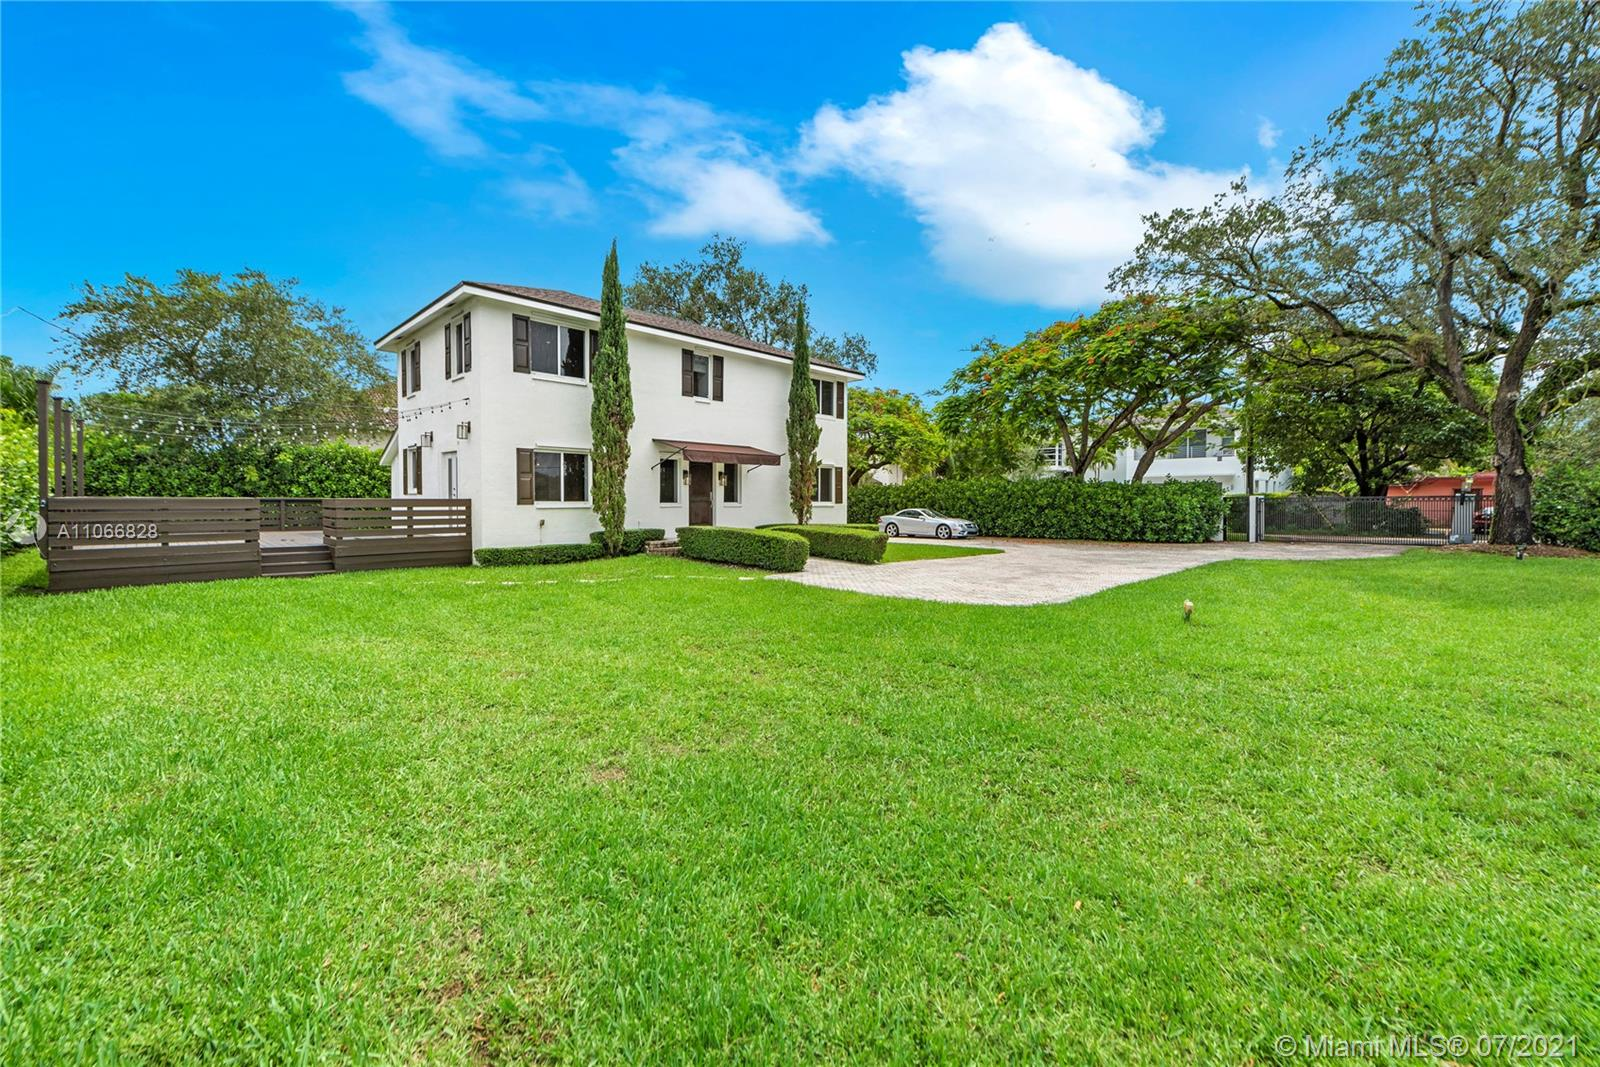 A beautiful remodeled estate with 16,240 square feet of land, centrally located near South Miami Hospital, restaurants, US1, and Sunset. One bedroom/ One bath downstairs and Three bedrooms/One bath upstairs. Beautiful custom finishes throughout the property. Updated kitchen, baths, floor, and custom closets. Long pavered driveway with enough space to put a pool, build a new property, and put an addition to the current property. No HOA. Ready to move in.